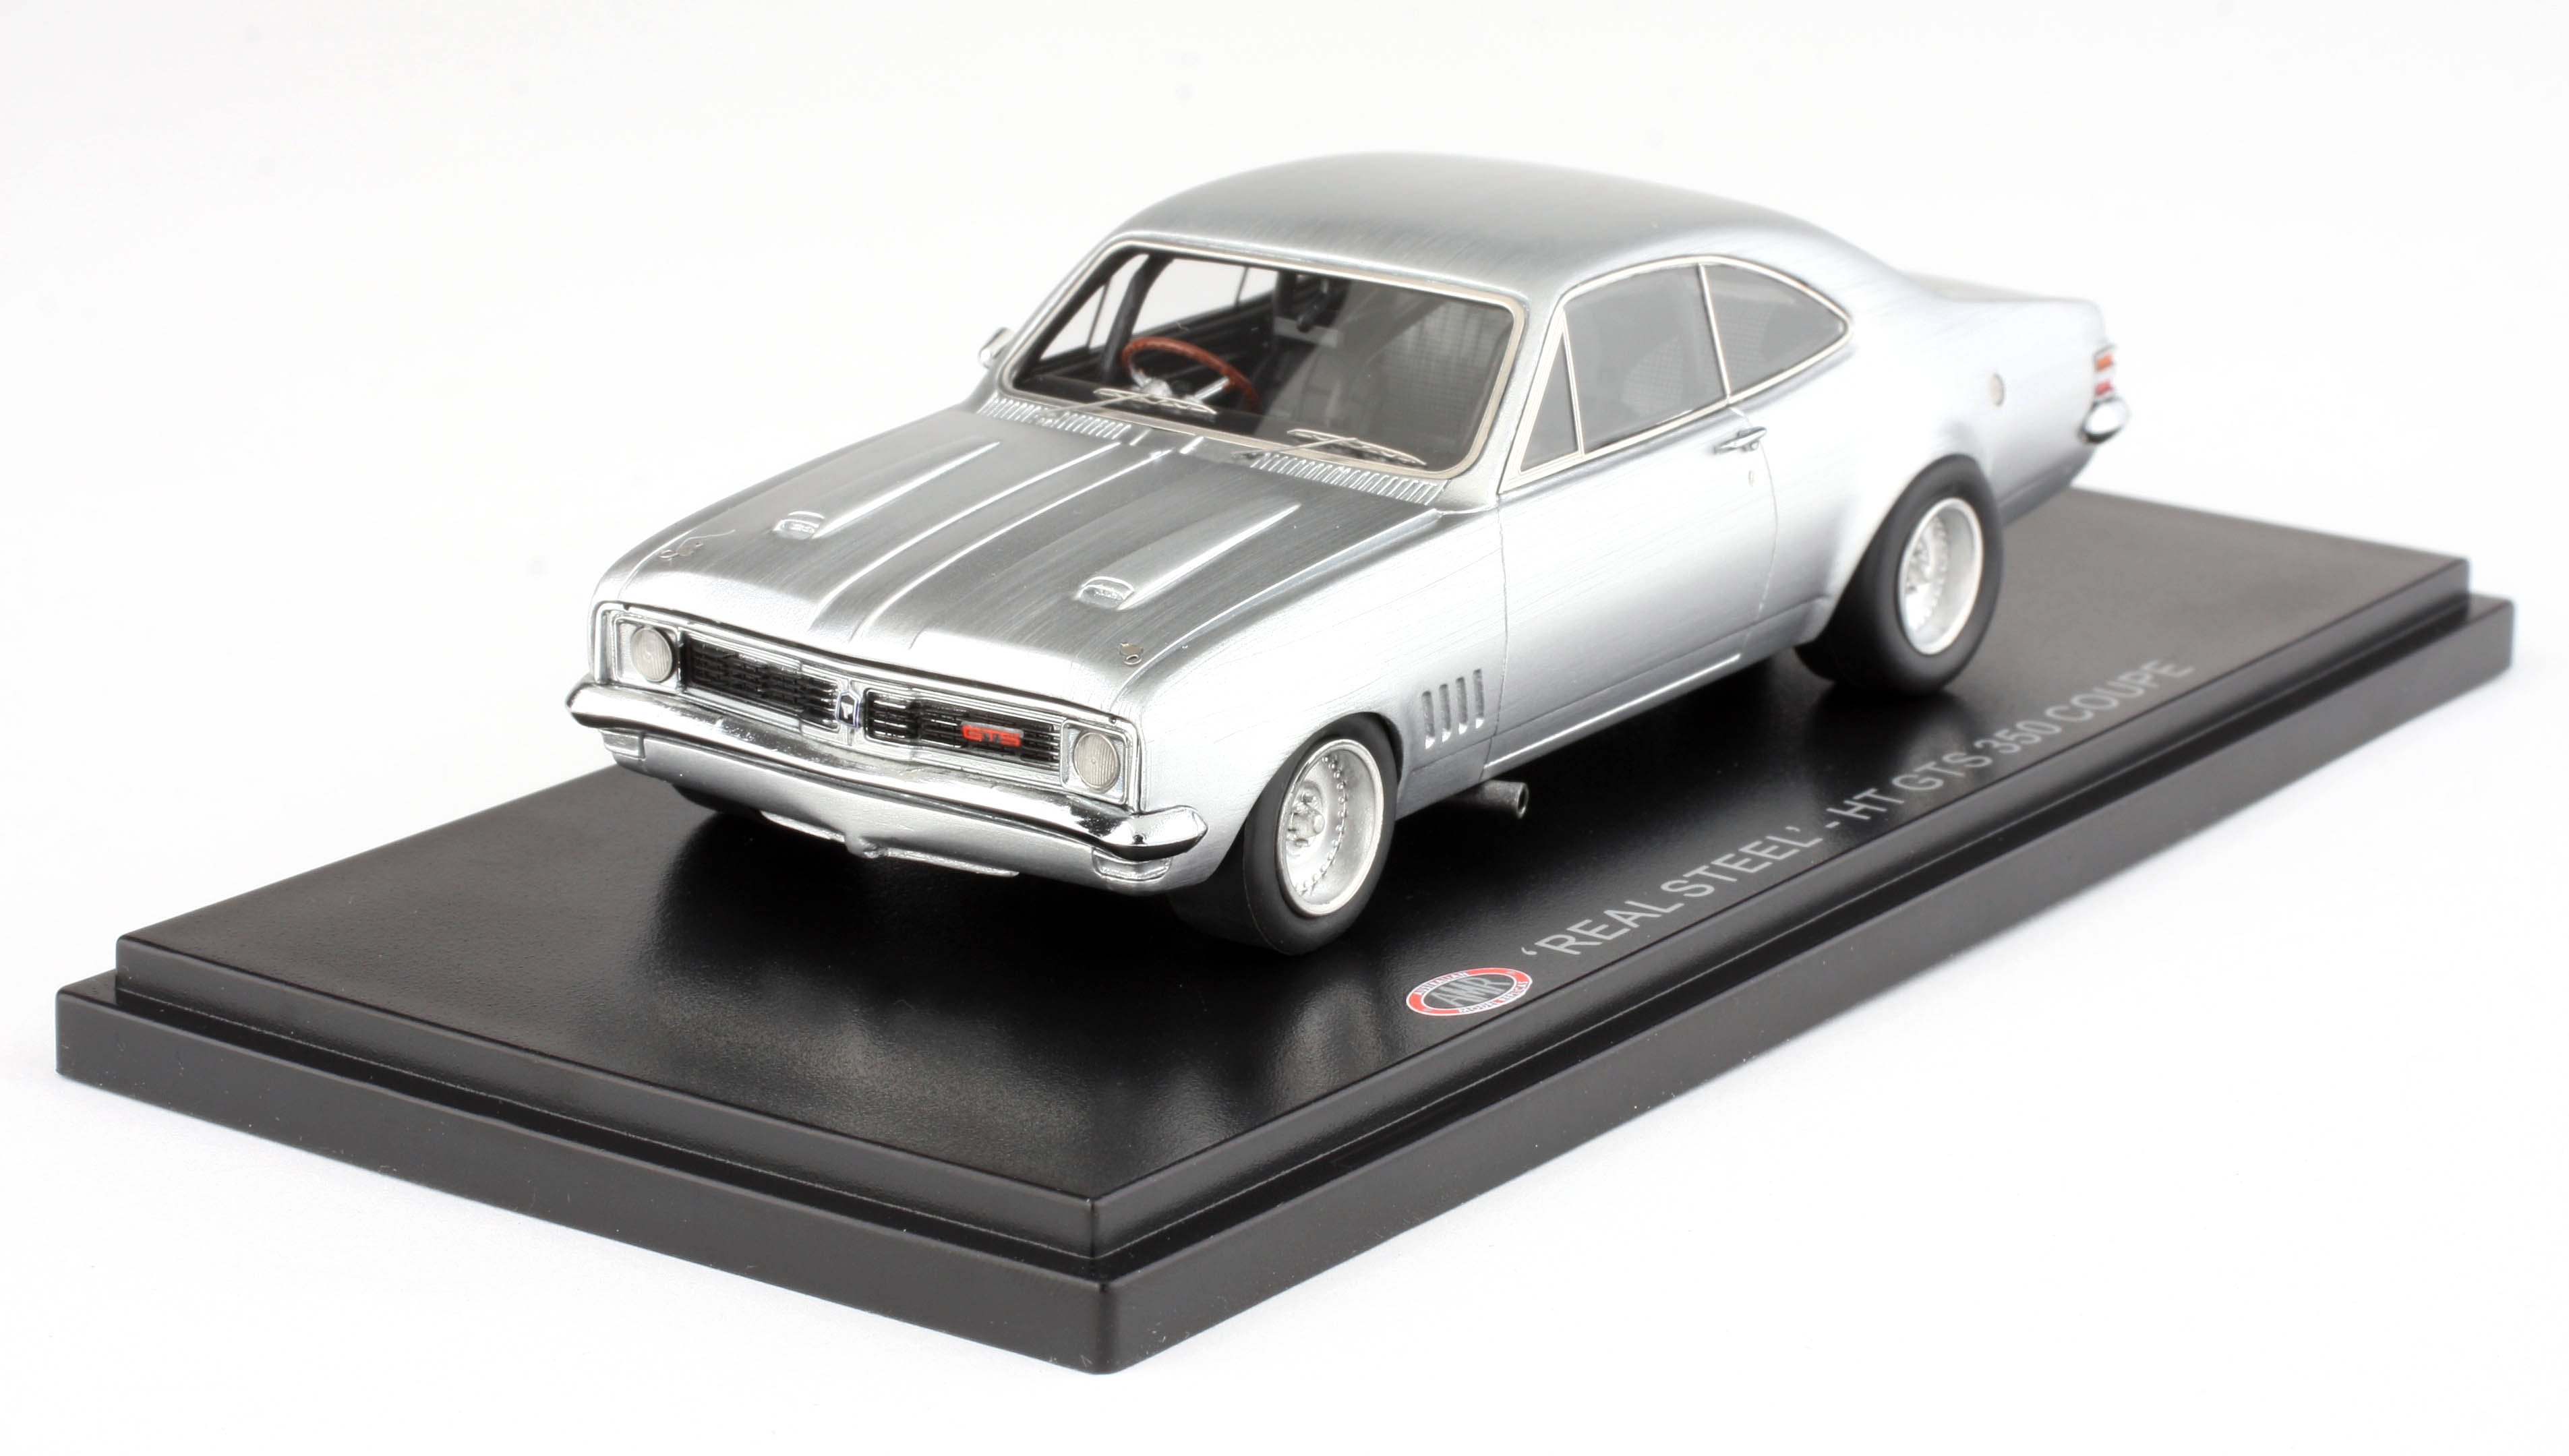 1:43 scale Australian Model Replicas Holden HT Monaro ' REAL STEEL' Resin Model car